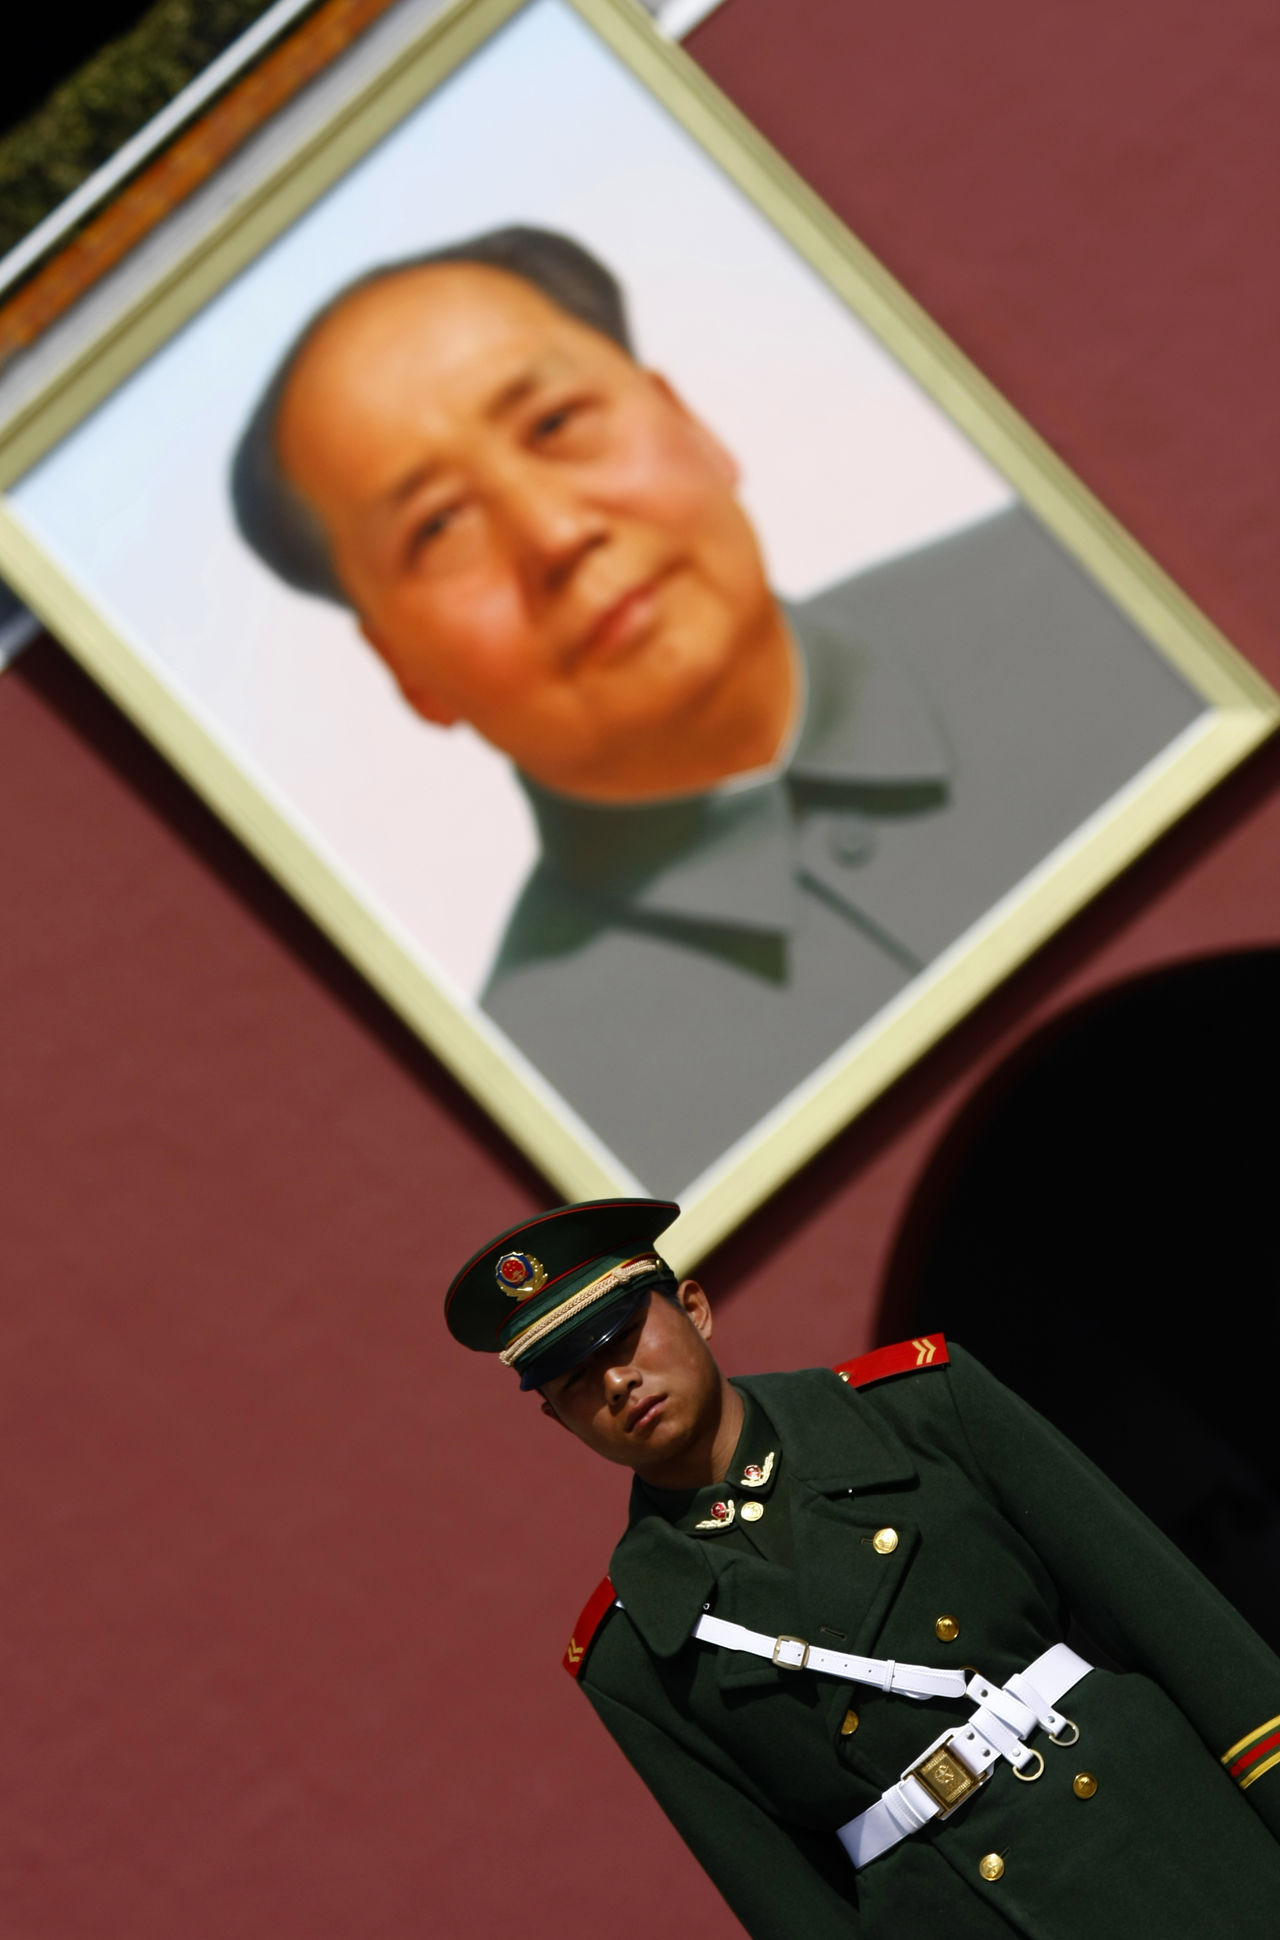 Beijing China Chinese Forbidden City Front View Guard Guarding Imperial Palace Leader Mao Person Portrait Waist Up Young Adult Young Men Zedong